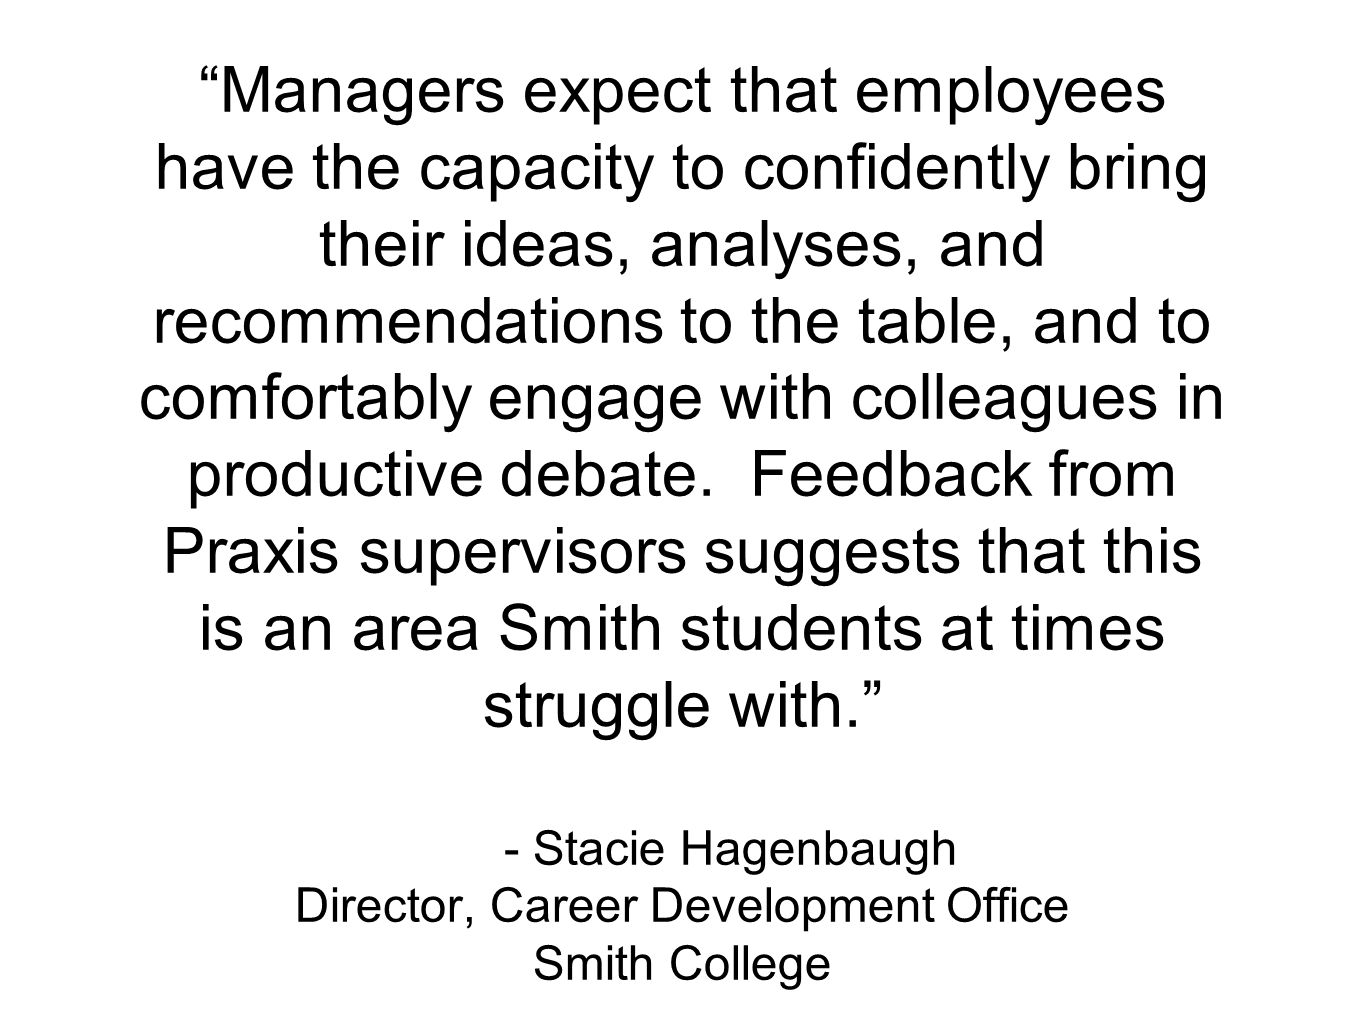 Managers expect that employees have the capacity to confidently bring their ideas, analyses, and recommendations to the table, and to comfortably engage with colleagues in productive debate.